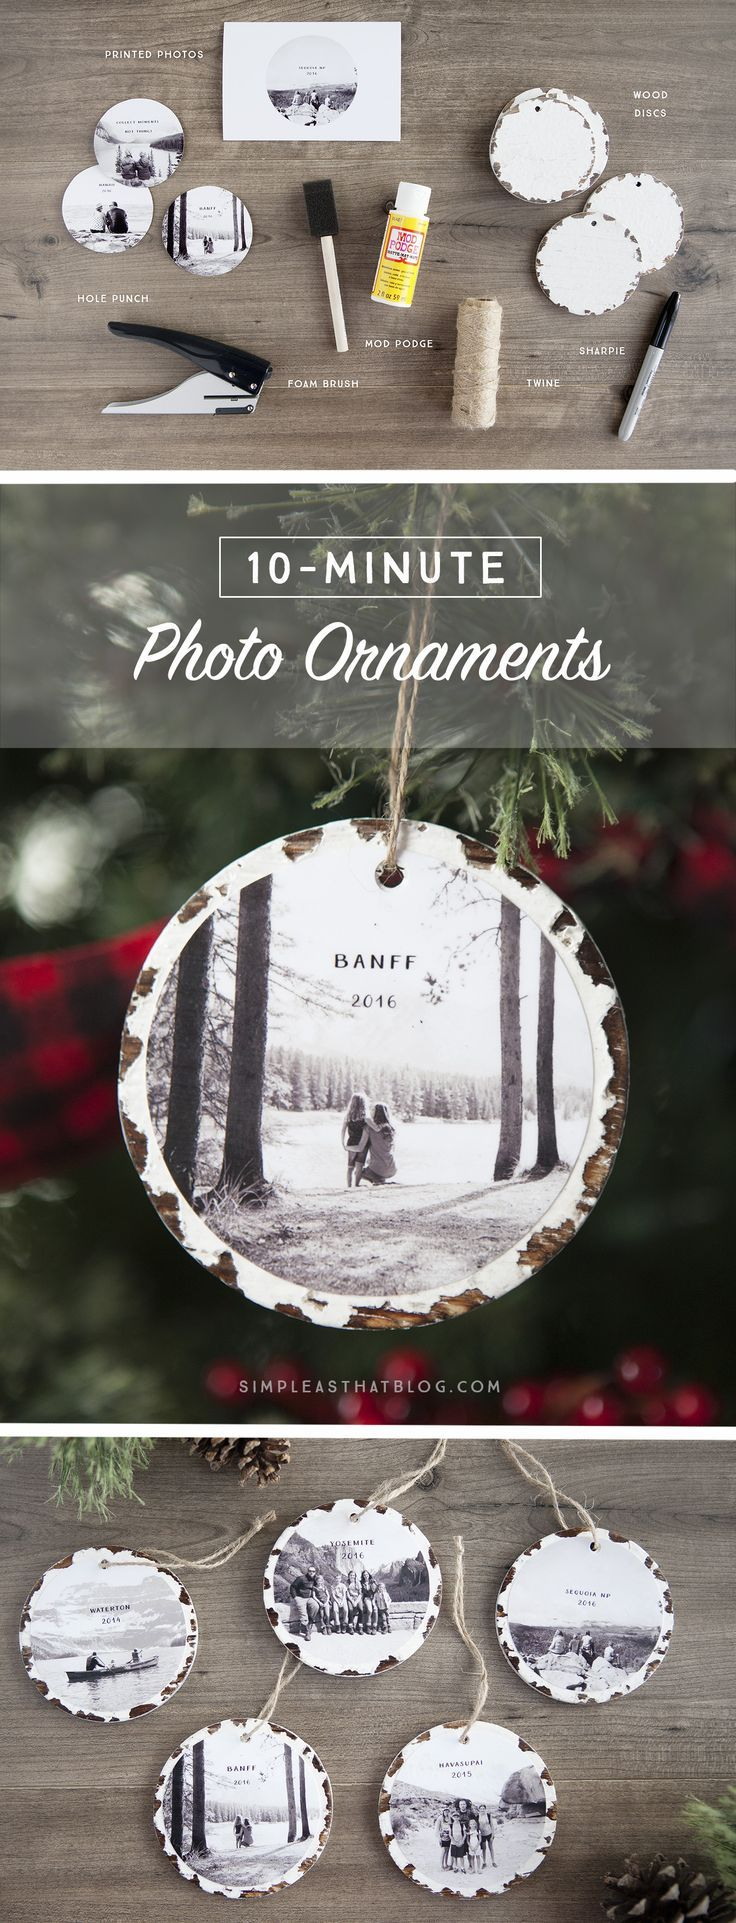 Diy christmas ornaments for newlyweds - 10 Minute Photo Keepsake Ornaments Homemade Ornamentsdiy Ornamentschristmas